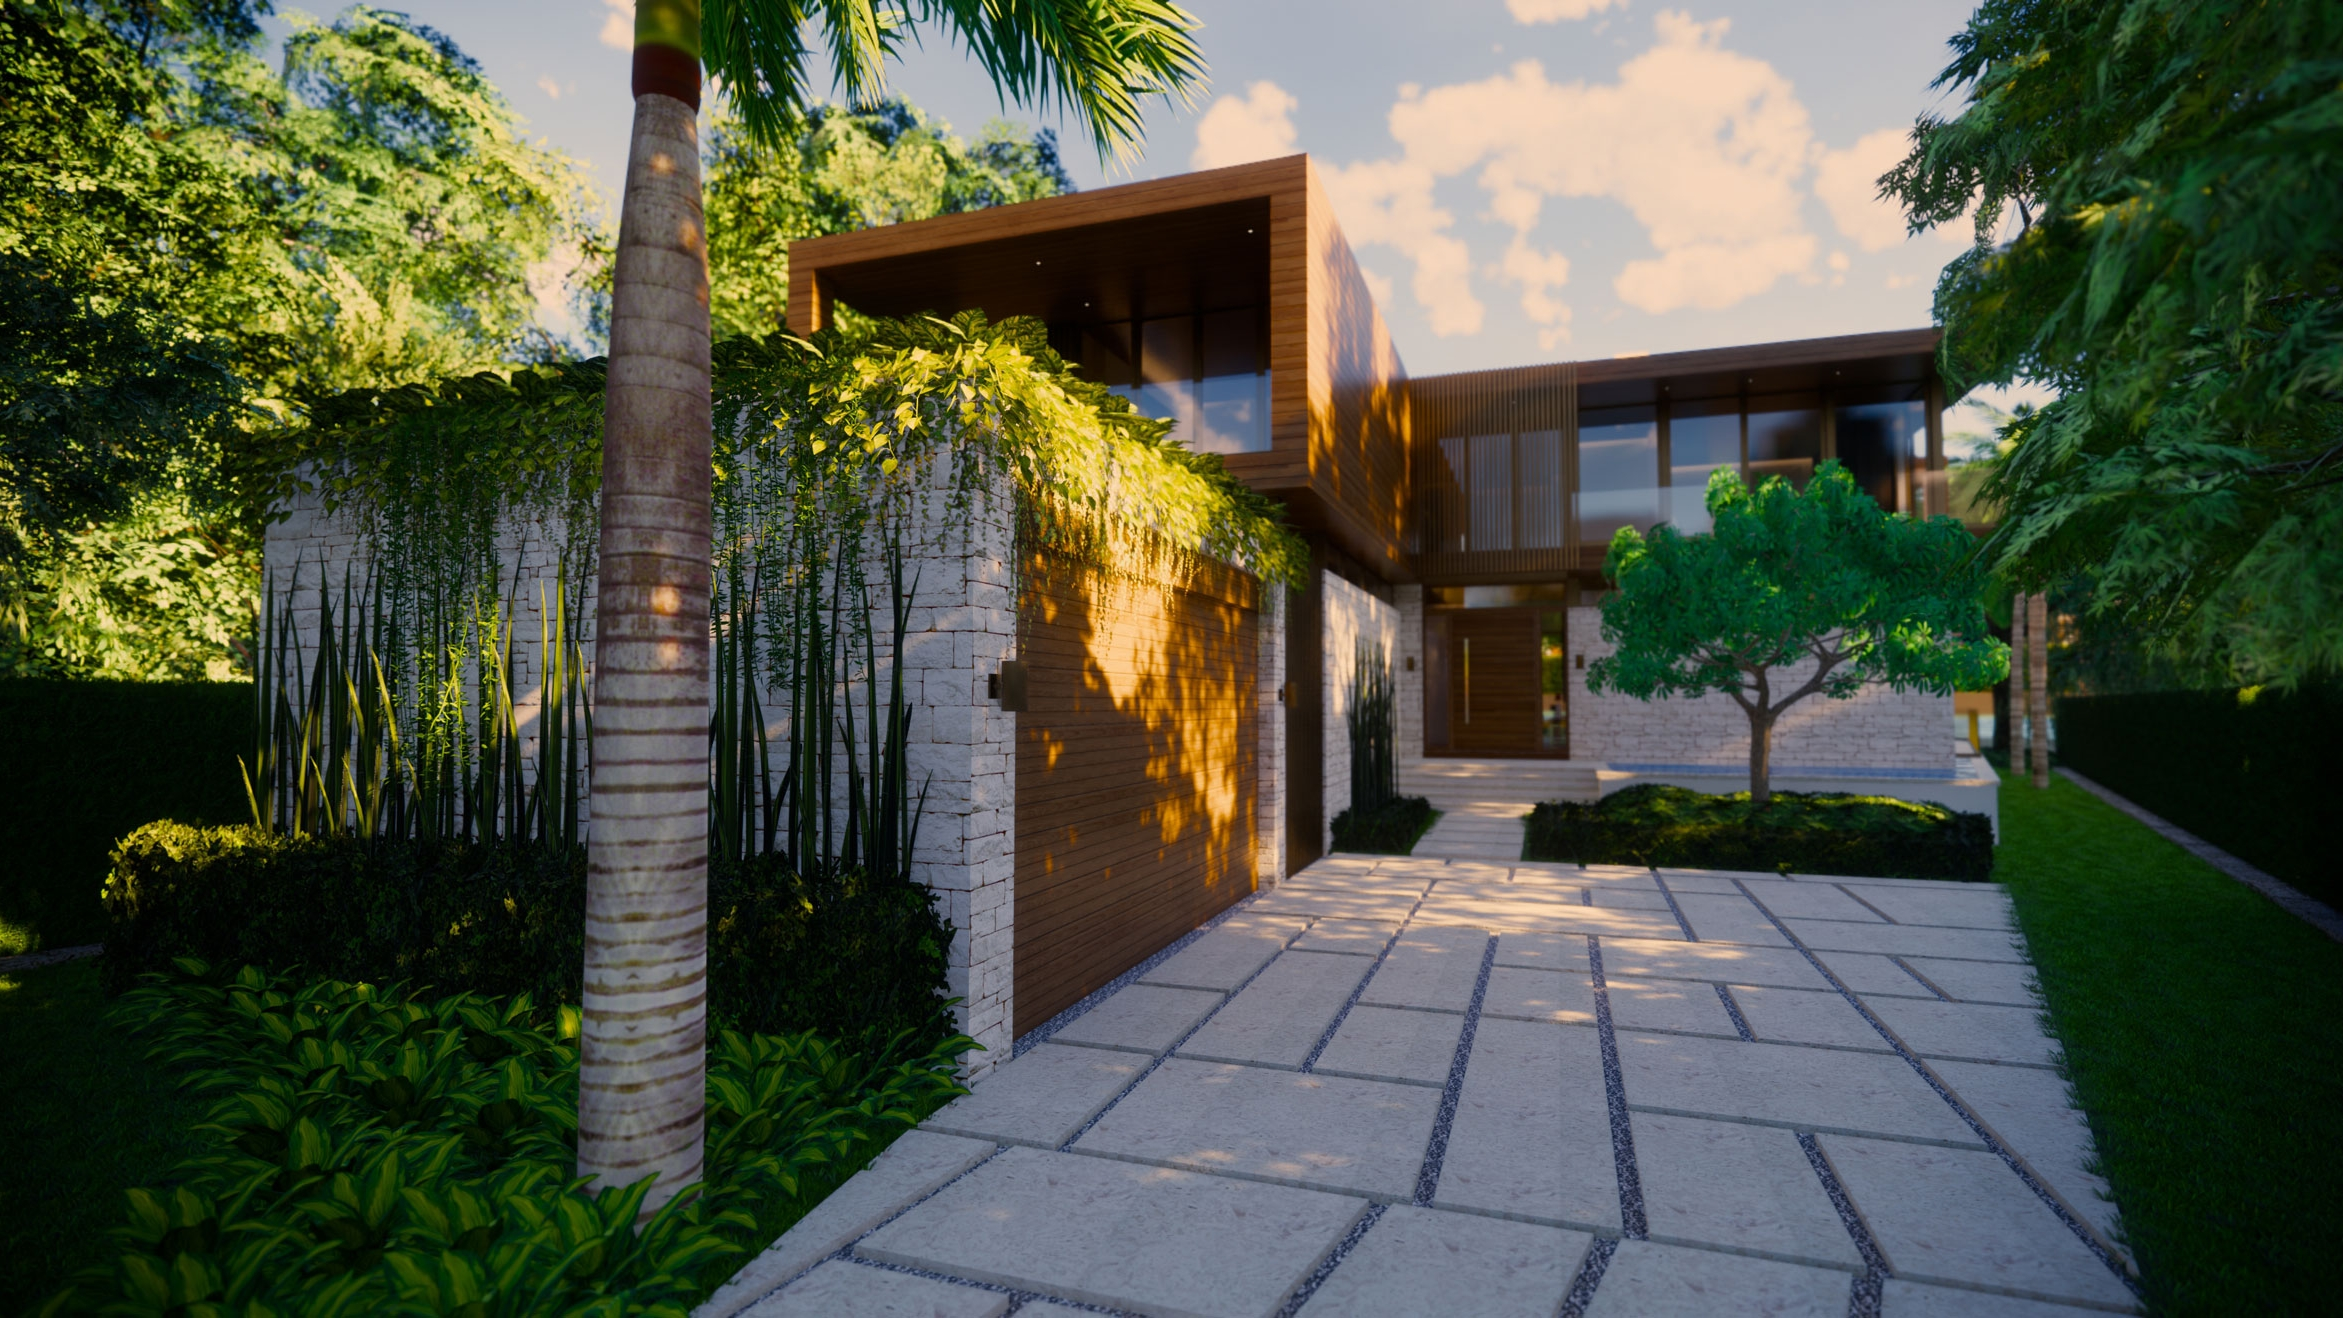 SAN MARINO RESIDENCE - CLICK HERE FOR MORE INFORMATION